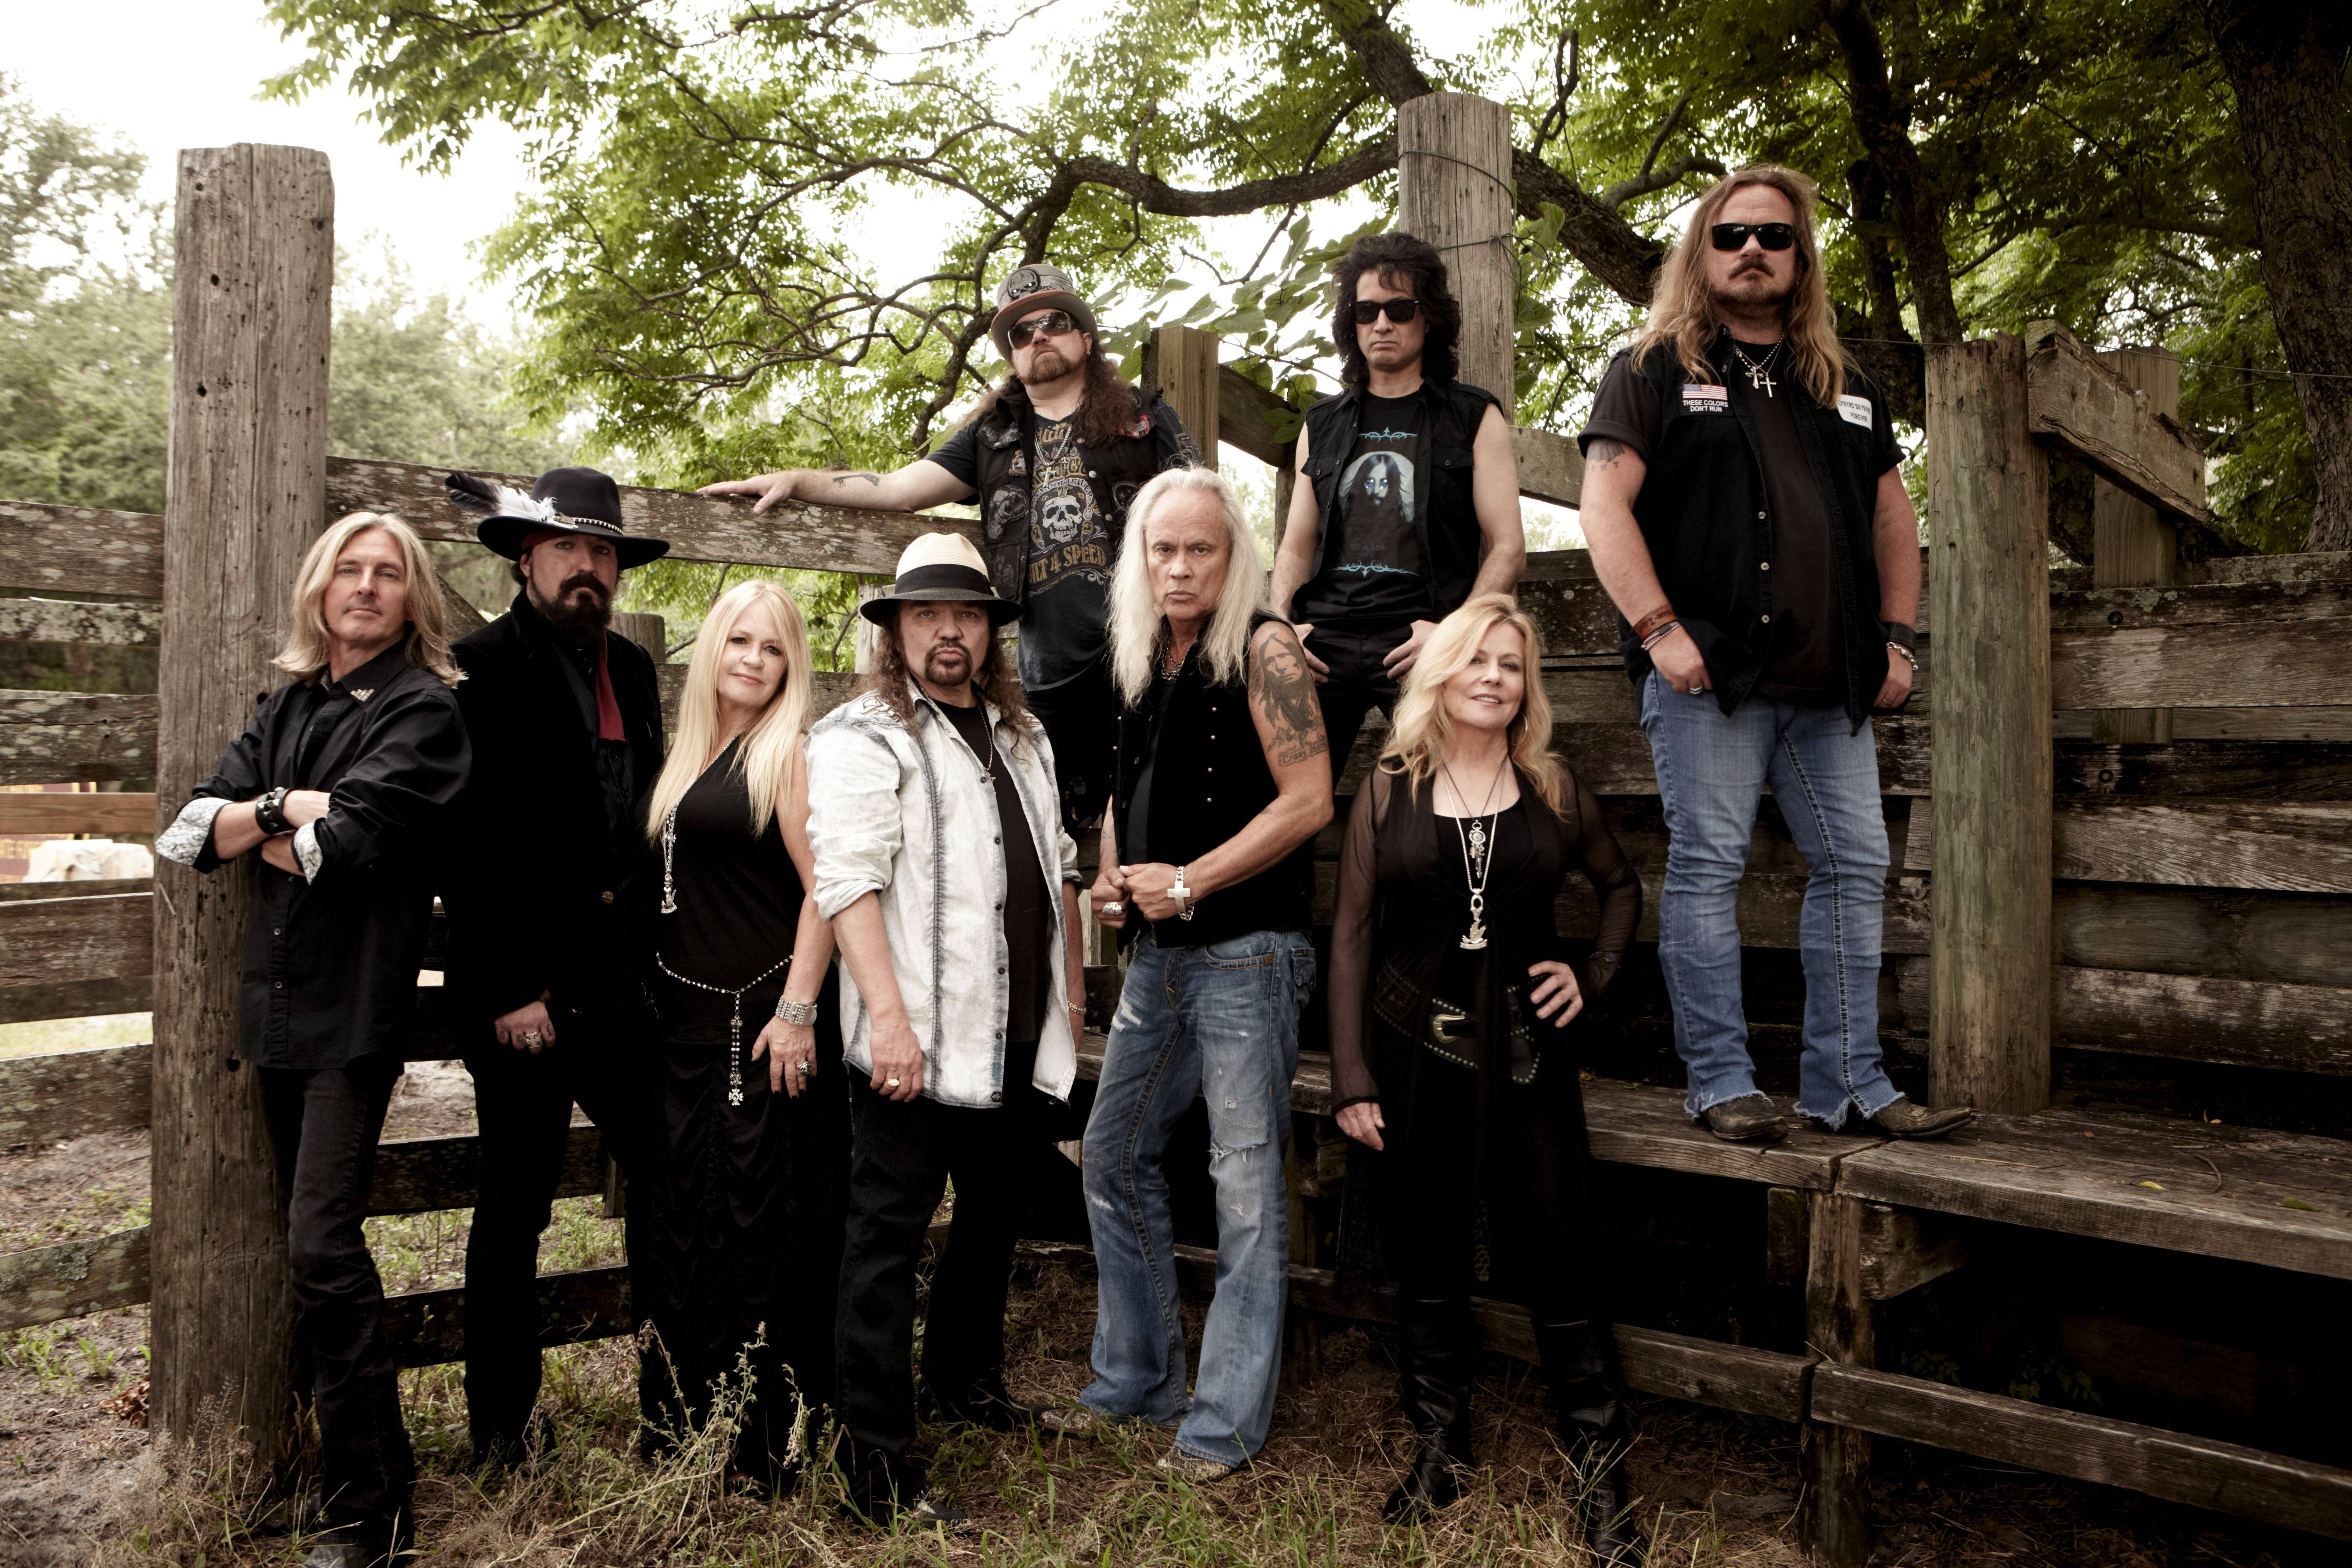 Lynyrd Skynard continues to perform its Southern rock classics.